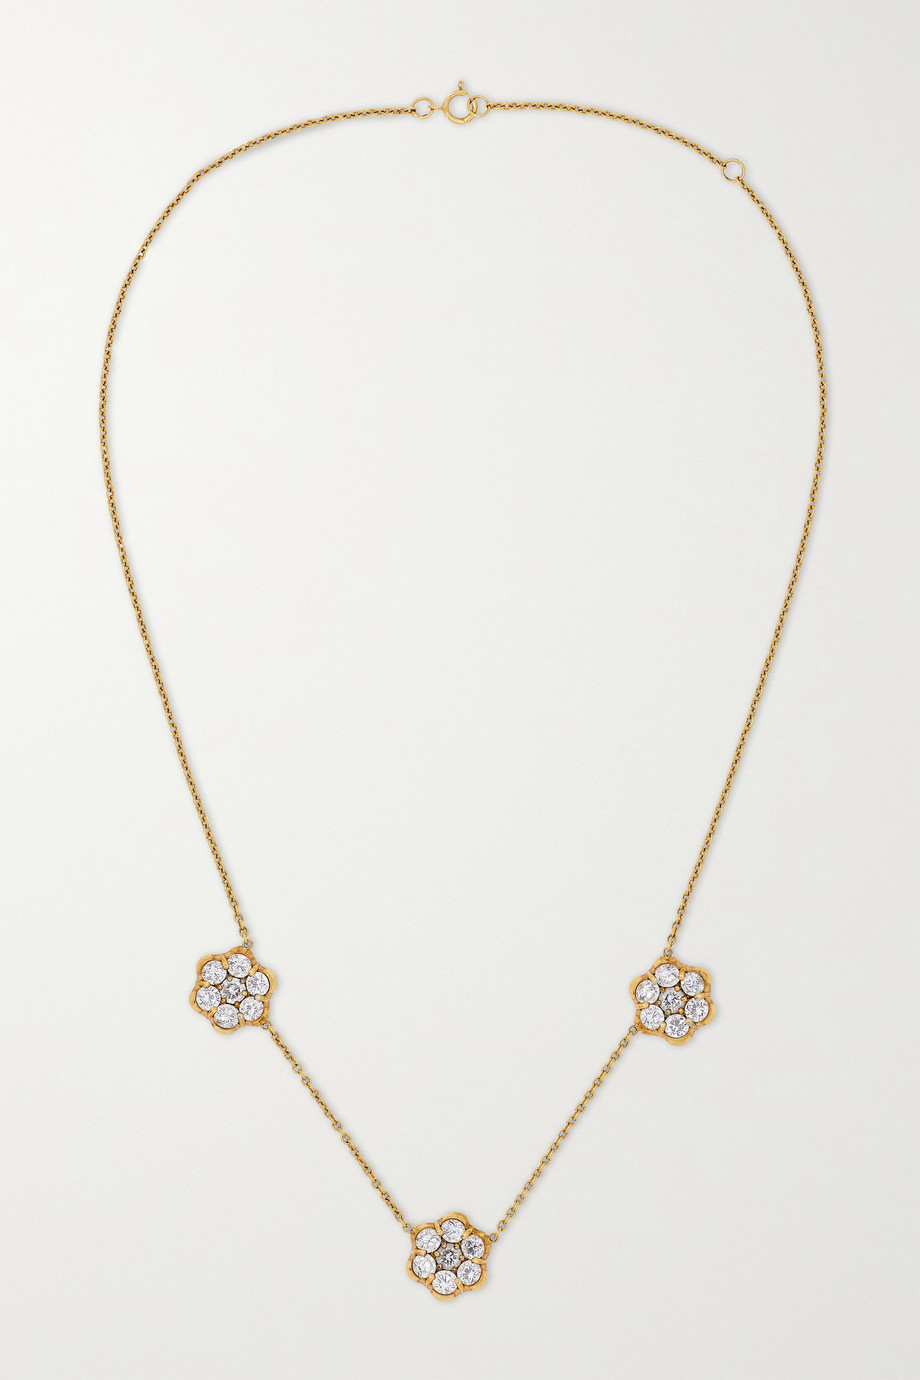 Bayco 18-karat gold diamond necklace